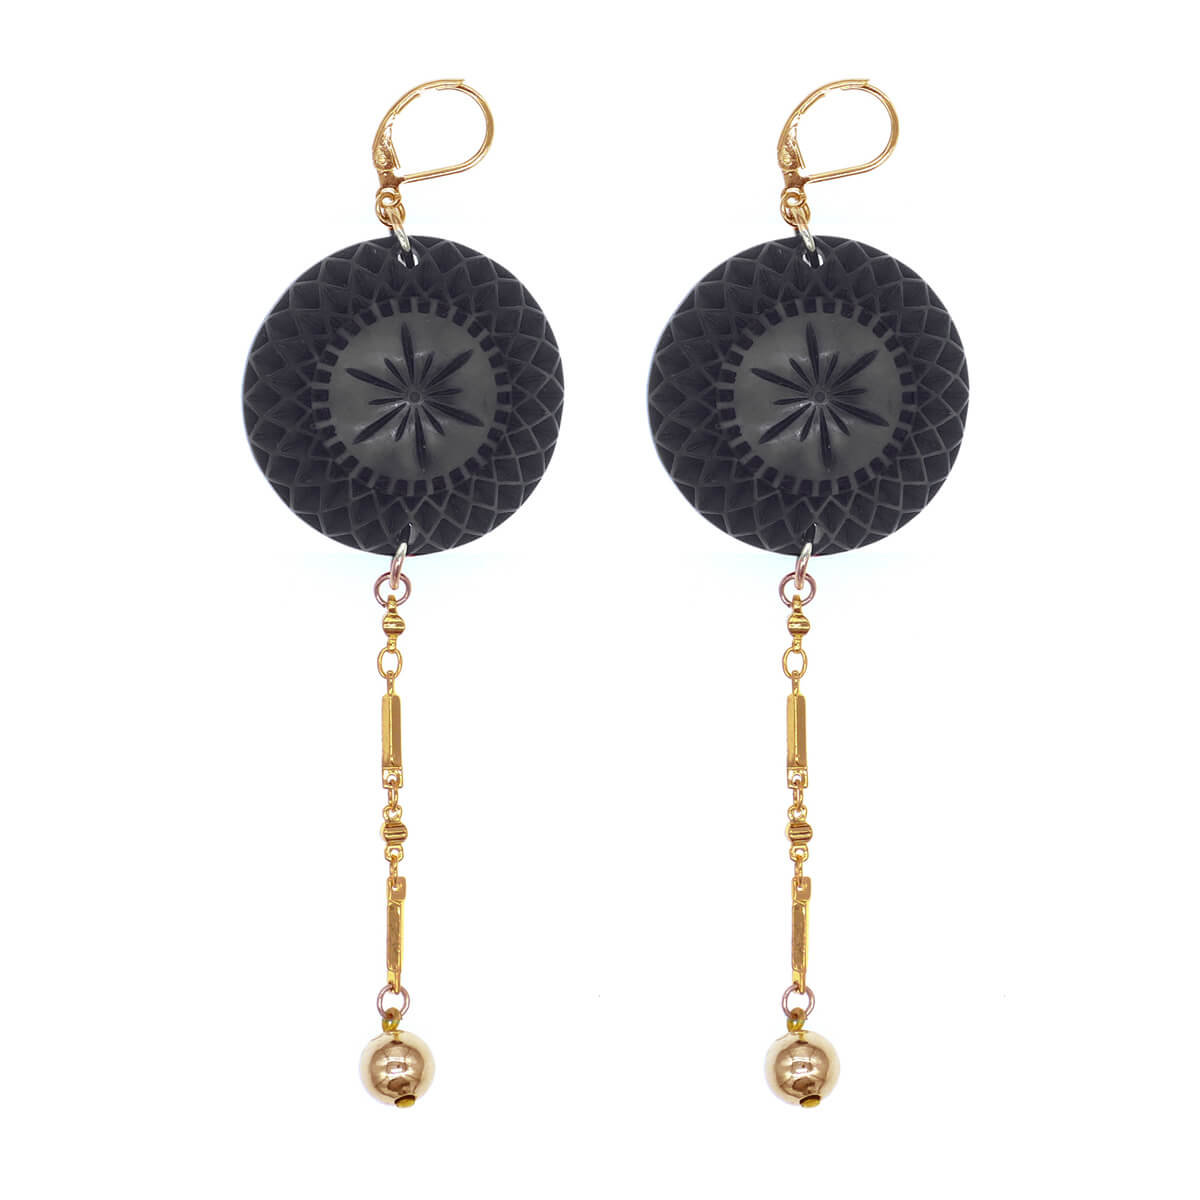 Etched Disc String Earrings Black